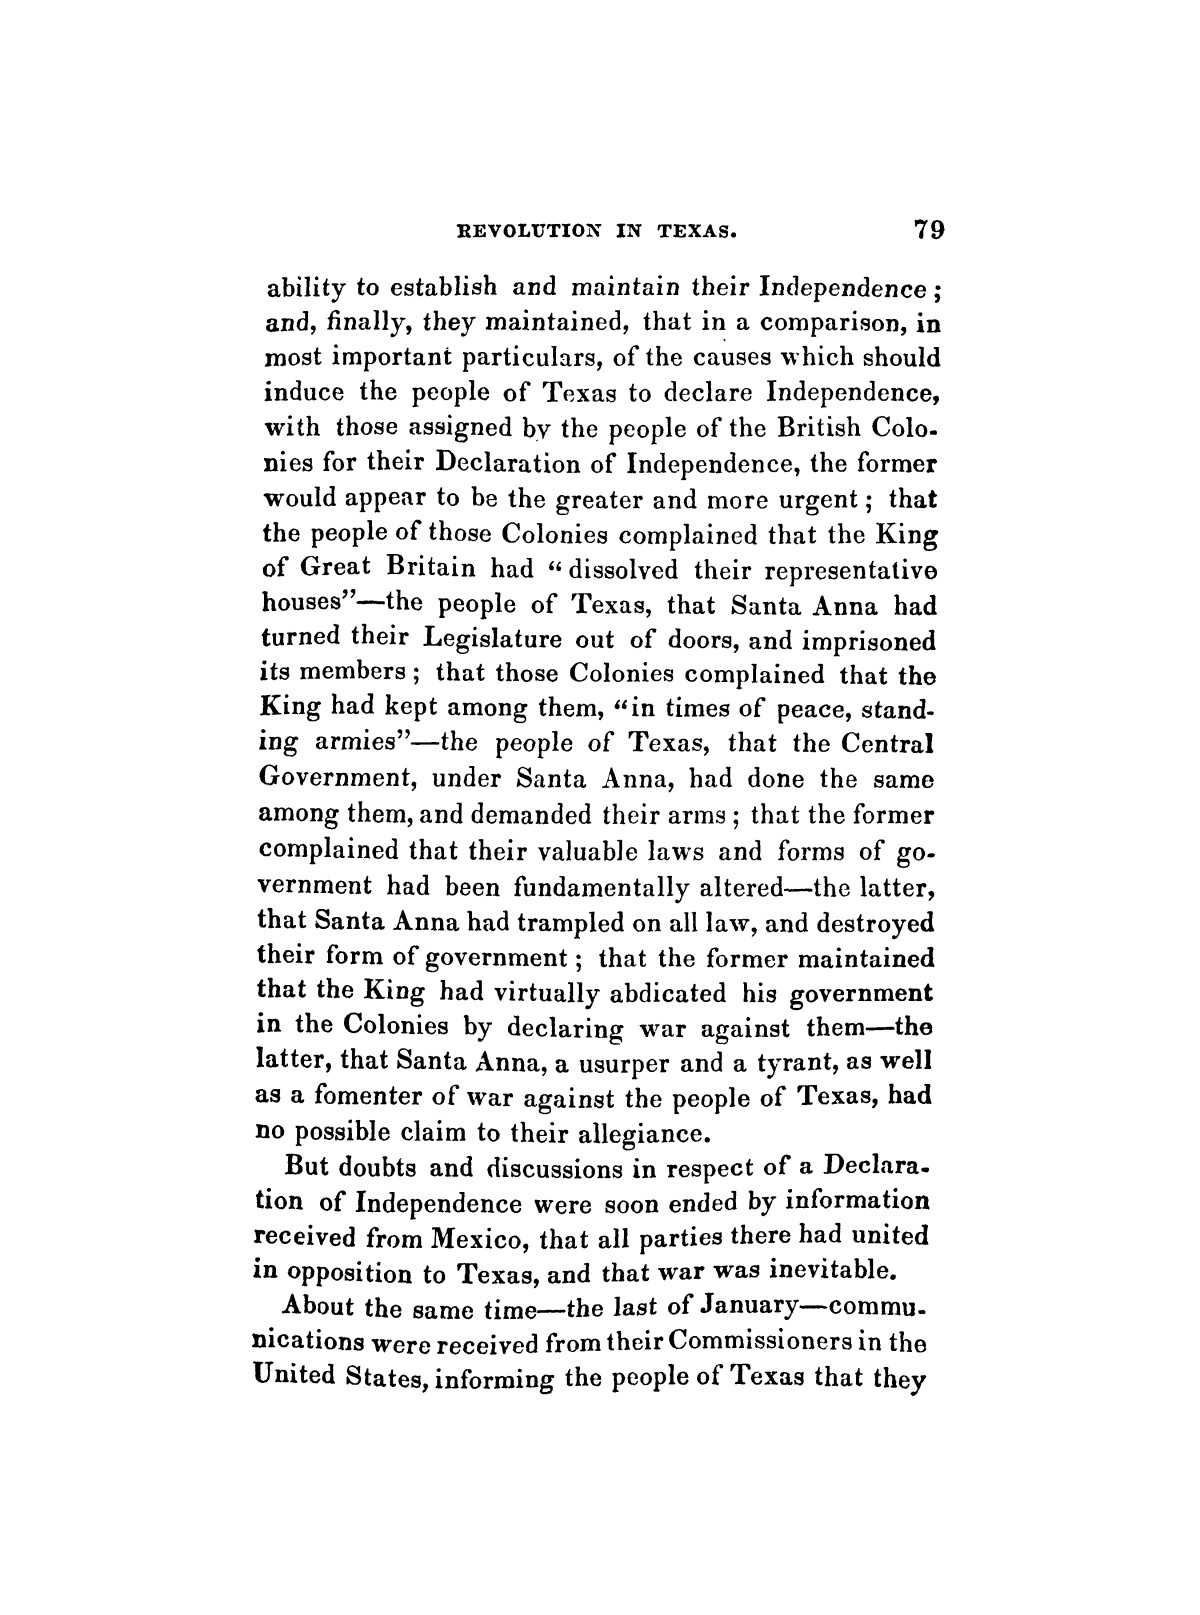 History of the revolution in Texas, particularly of the war of 1835 & '36; together with the latest geographical, topographical, and statistical accounts of the country, from the most authentic sources. Also, an appendix. By the Rev. C. Newell.                                                                                                      [Sequence #]: 91 of 227